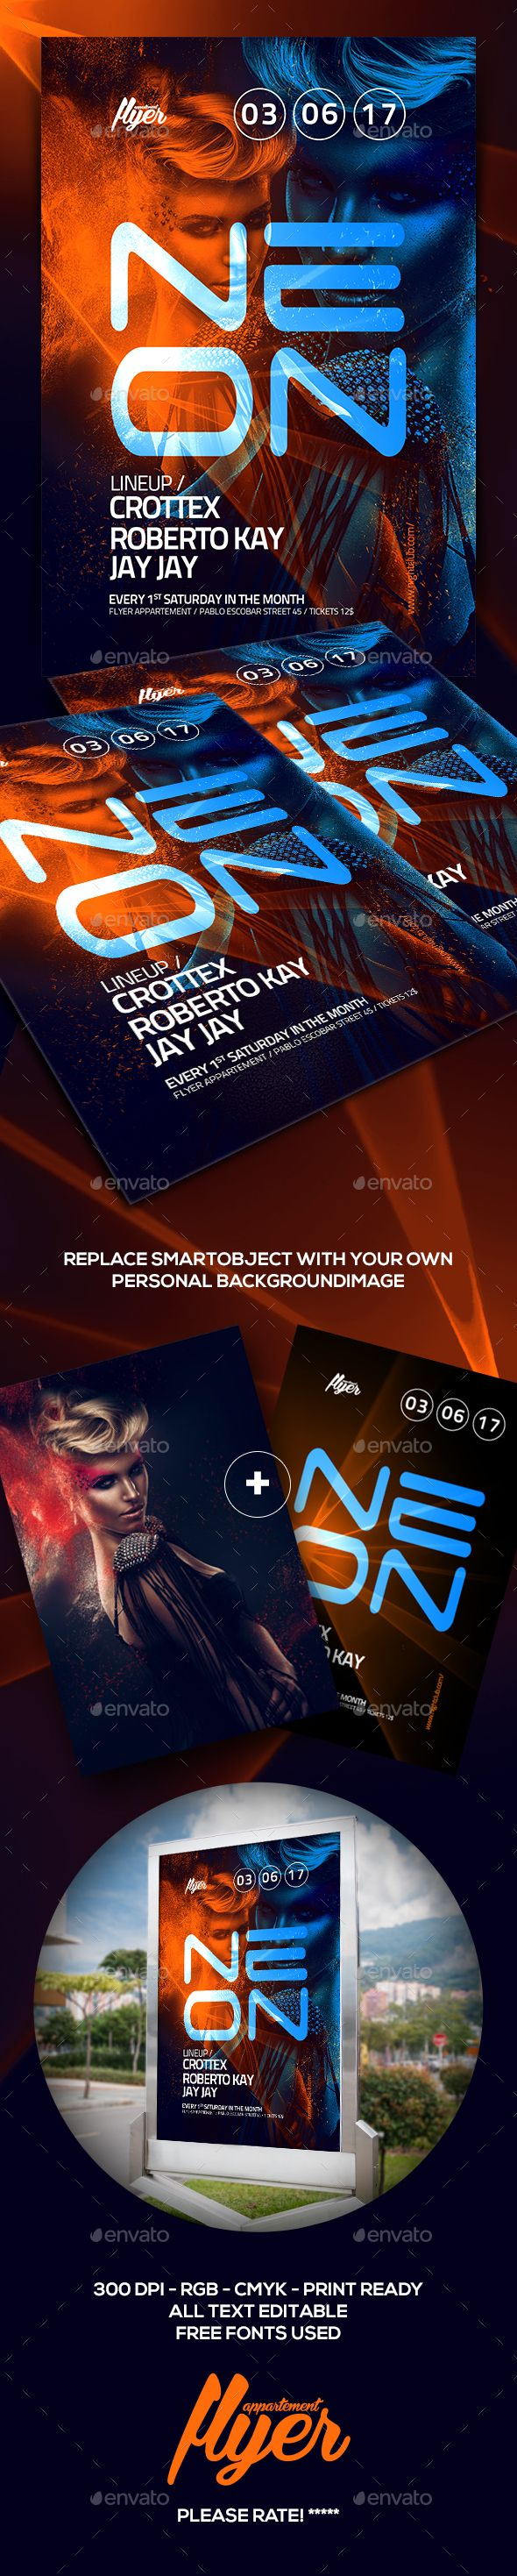 NEON Party Flyer — Photoshop PSD #party #festival • Download ➝ https://graphicriver.net/item/neon-party-flyer/19191146?ref=pxcr